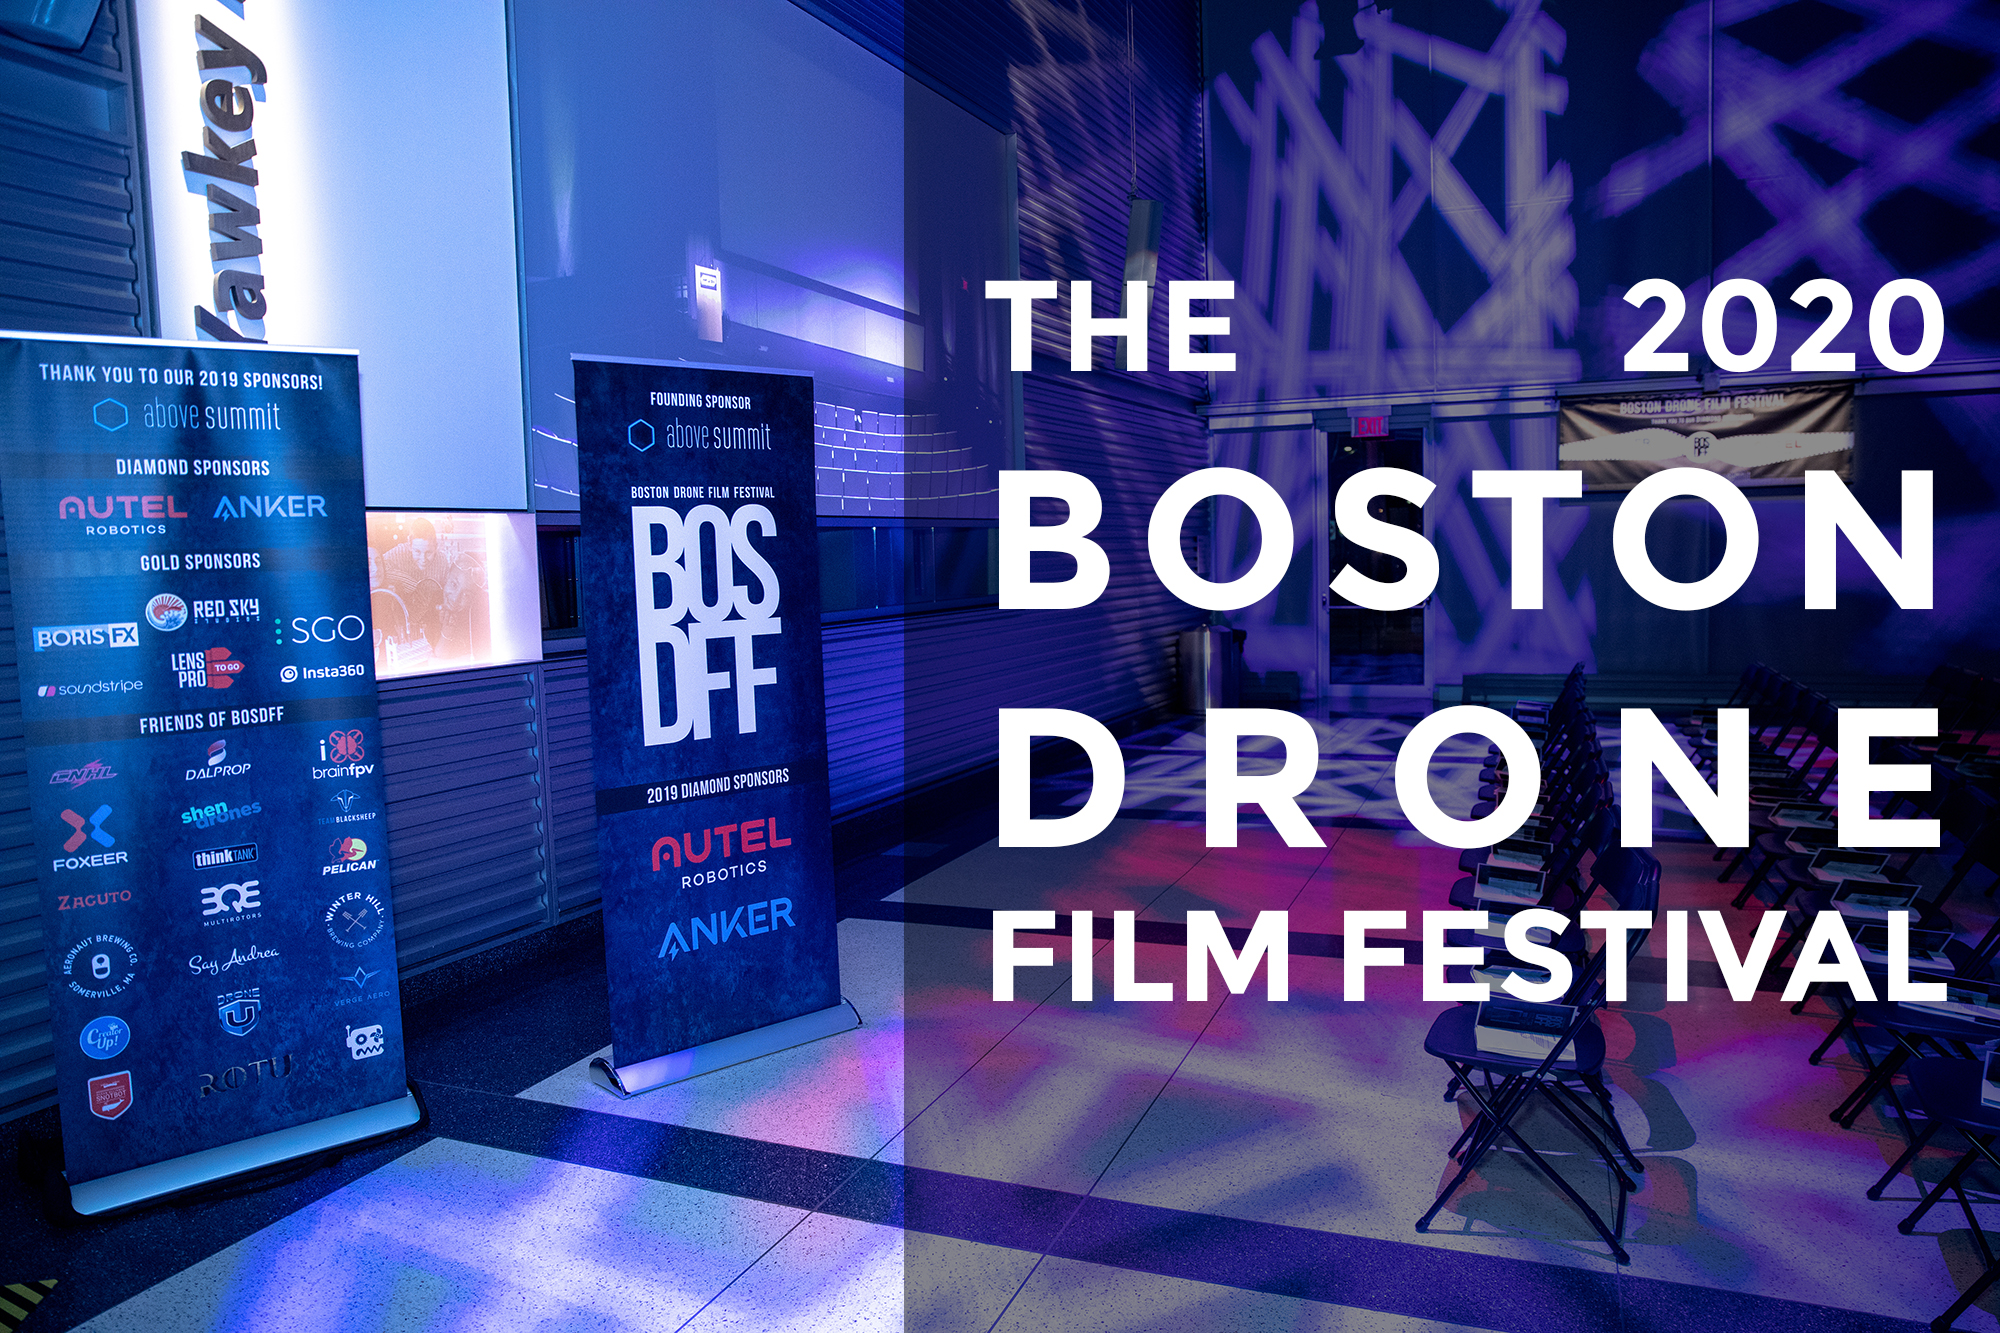 The 2020 Boston Dronie Film Festival - FilterGrade